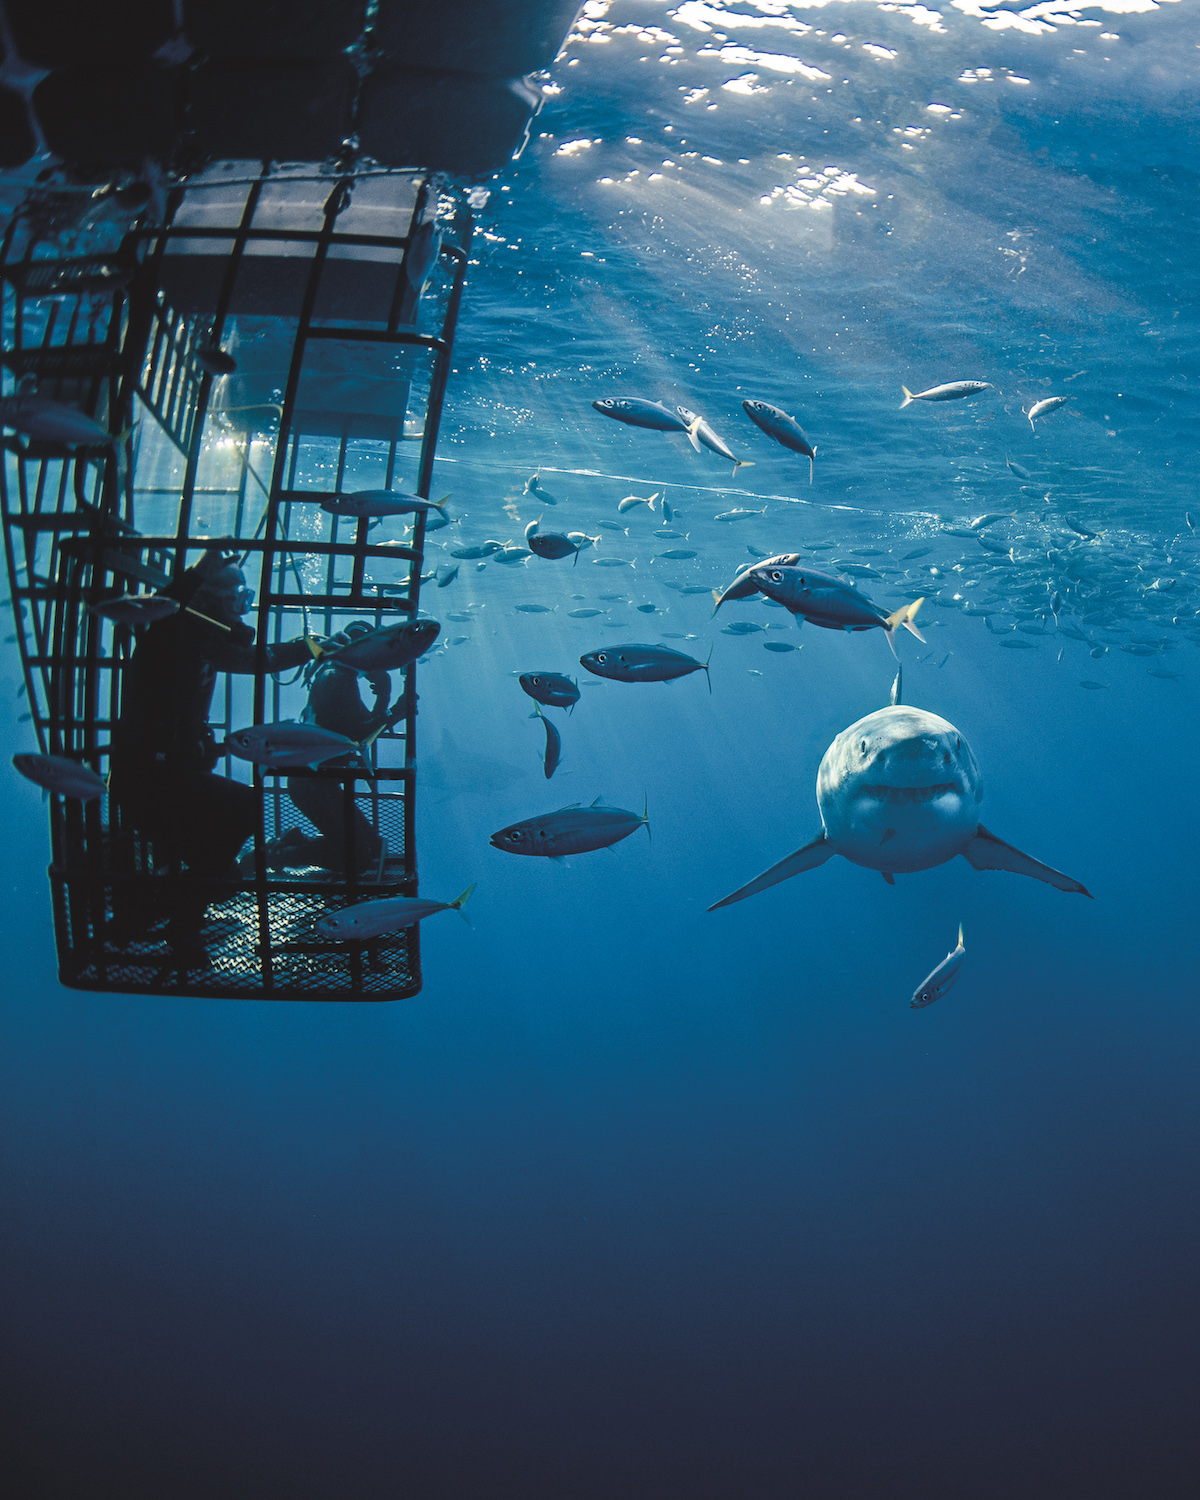 Guadalupe - Cage diving with great white sharks